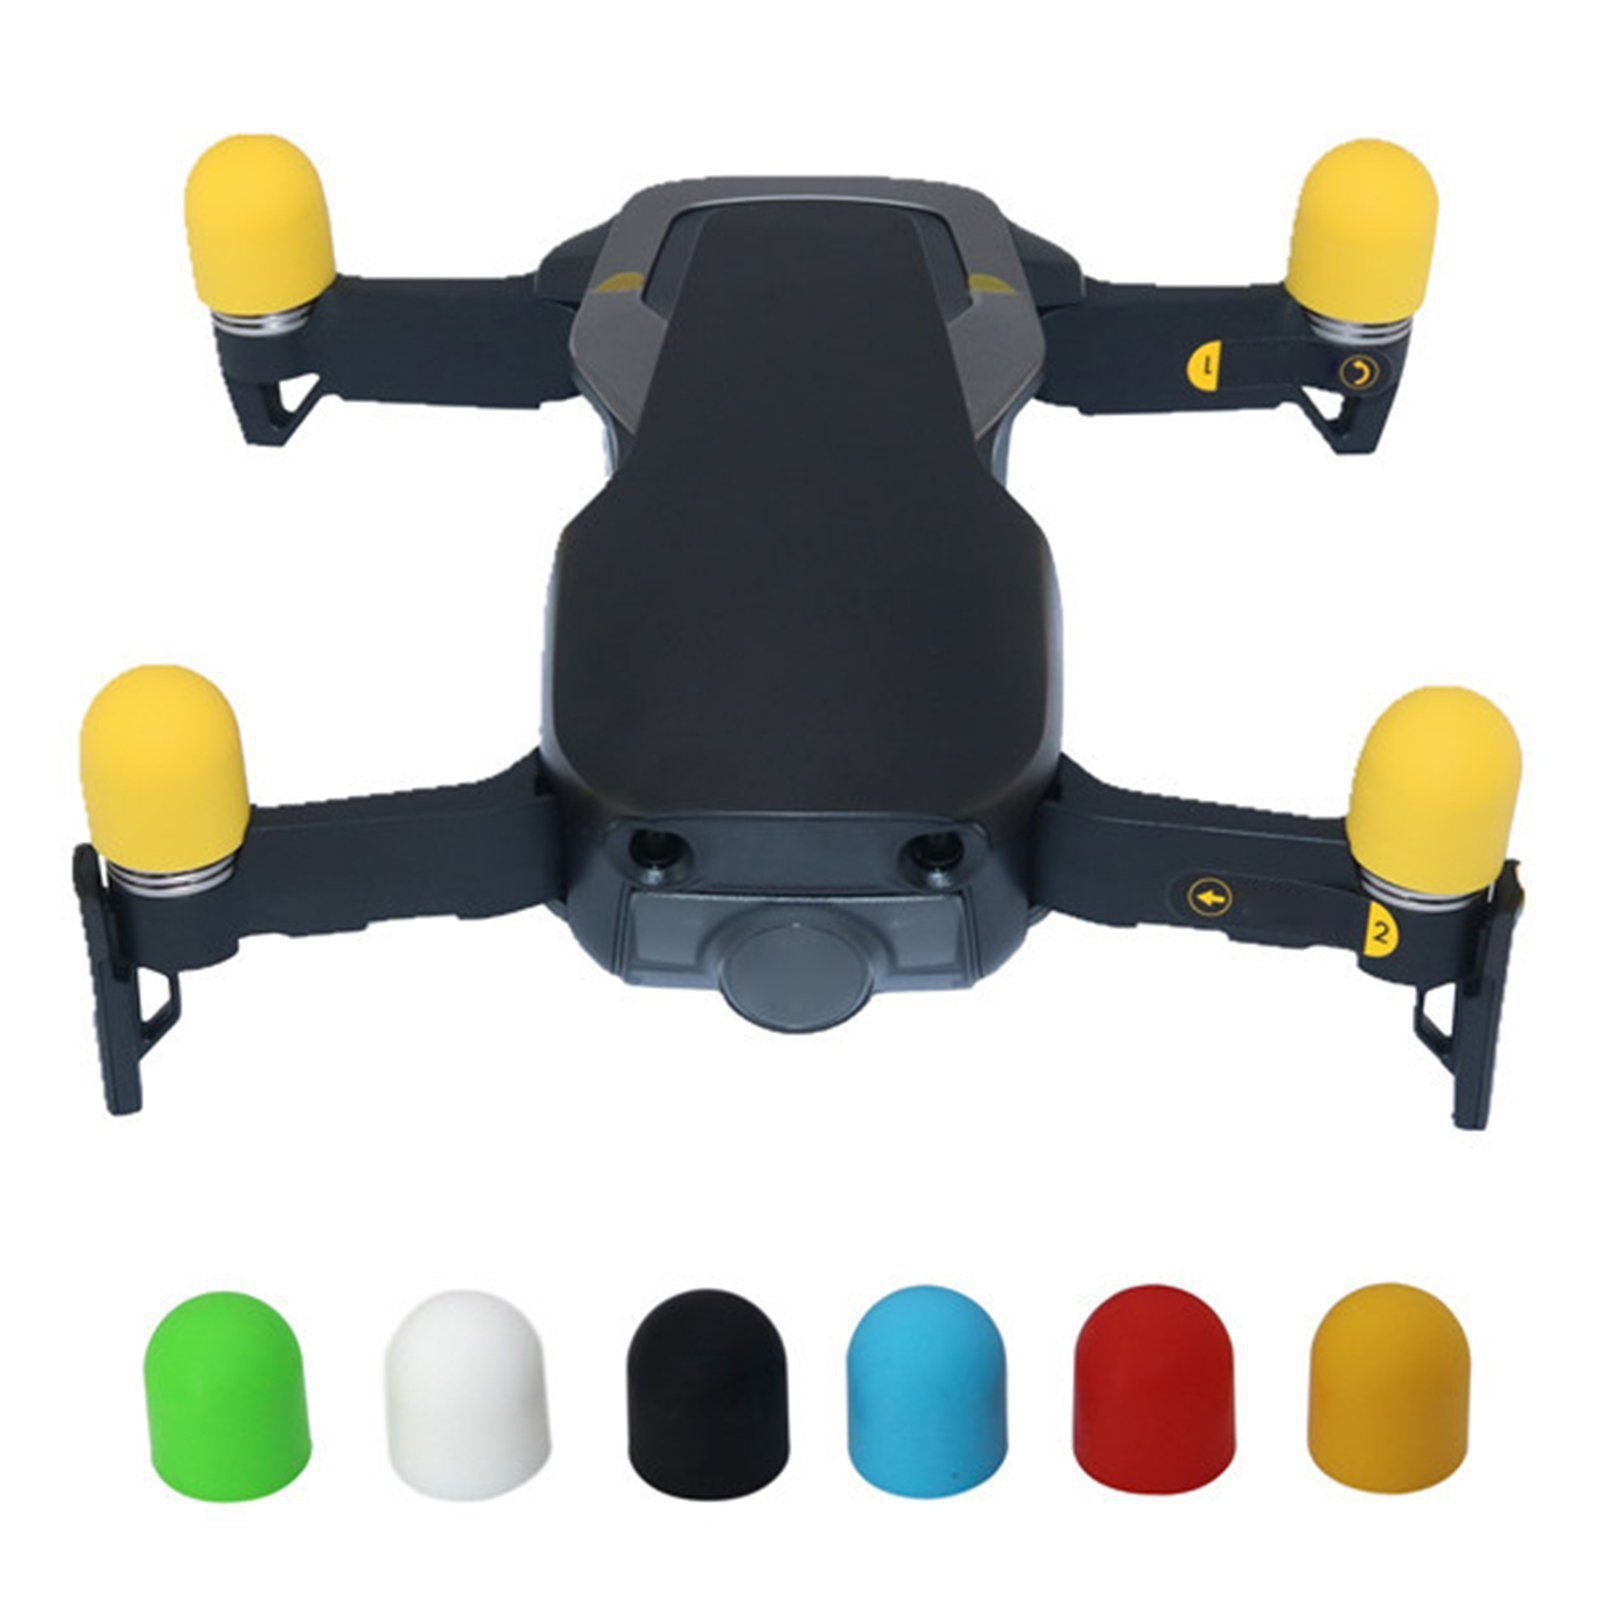 DJI Unmanned Aerial Vehicle Xiao Spark YULAI Mavic Air Motor Zhao Dianyuansu Ji Protective Cover Silicone Case Accessories